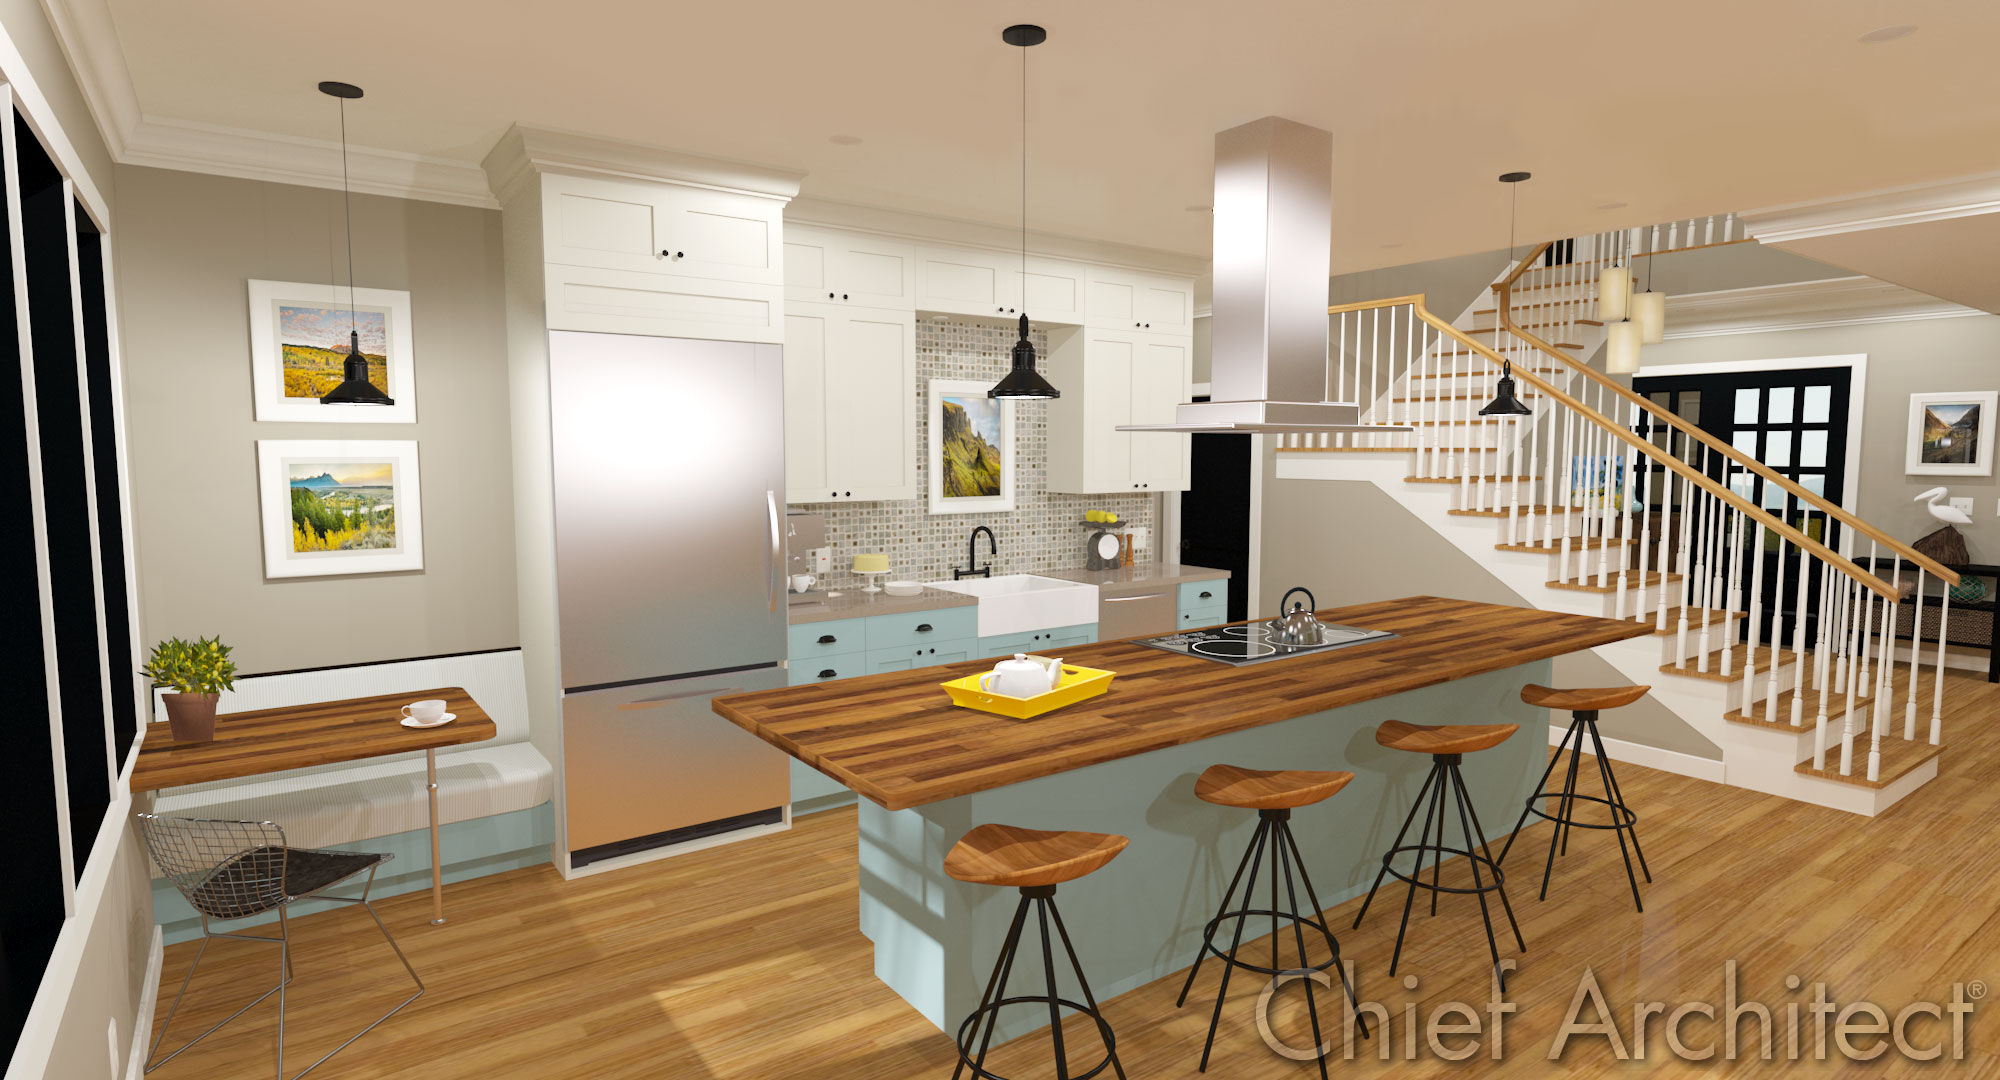 Kitchens   Baths. Chief Architect Home Design Software   Samples Gallery